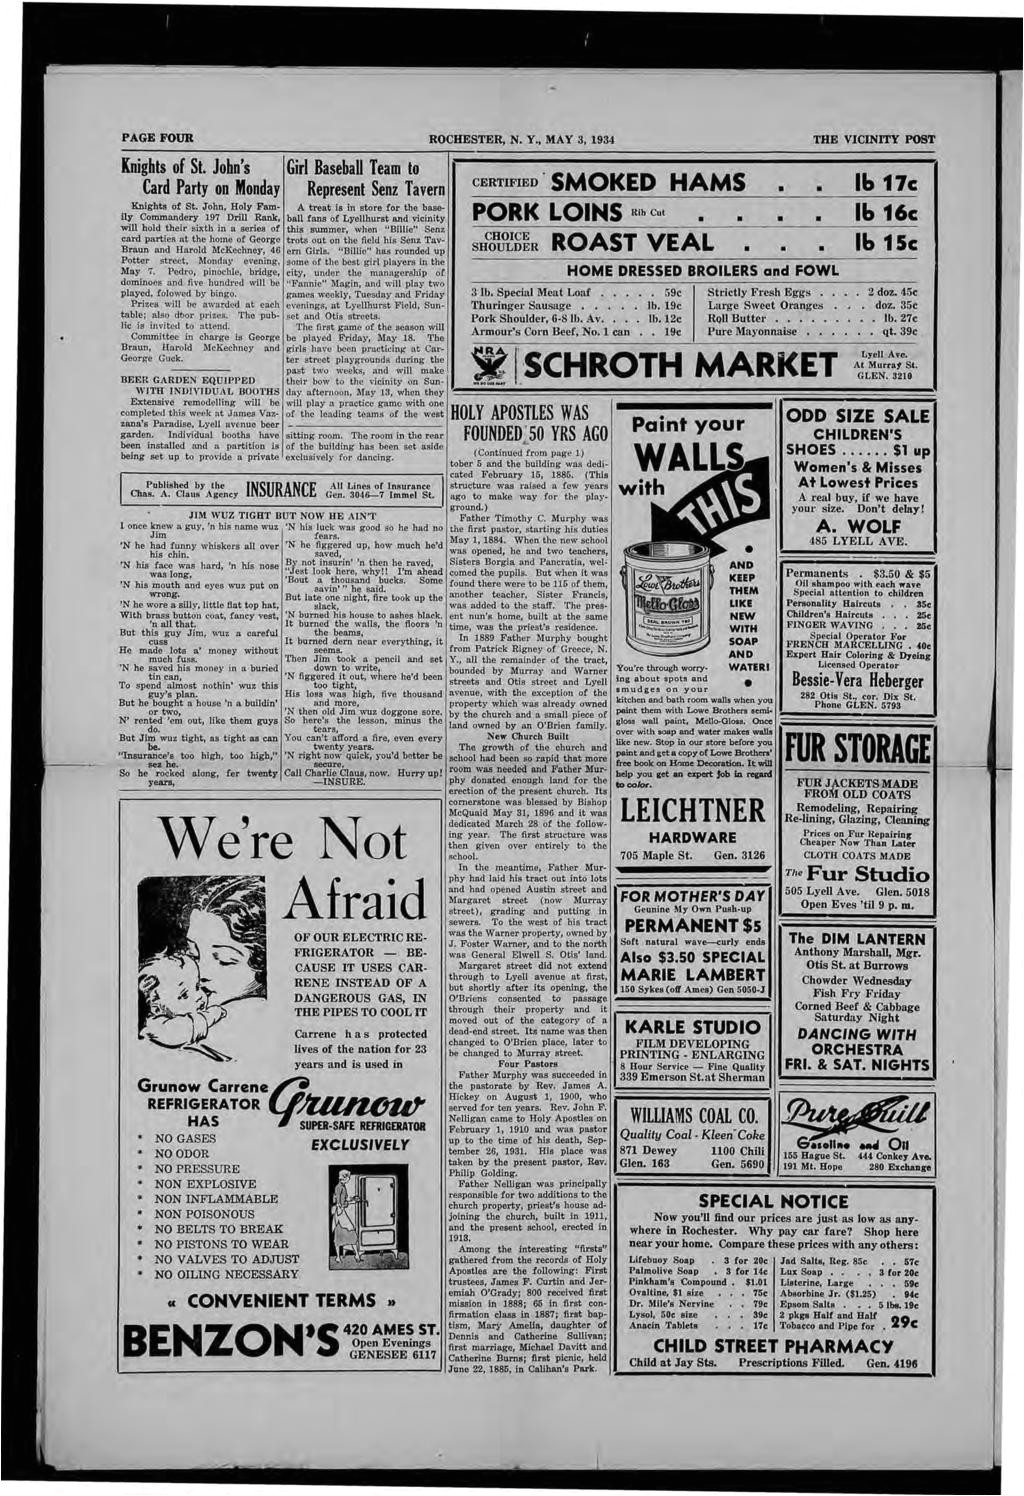 page four rochester n y may 3 1934 the vicinity post knights of st